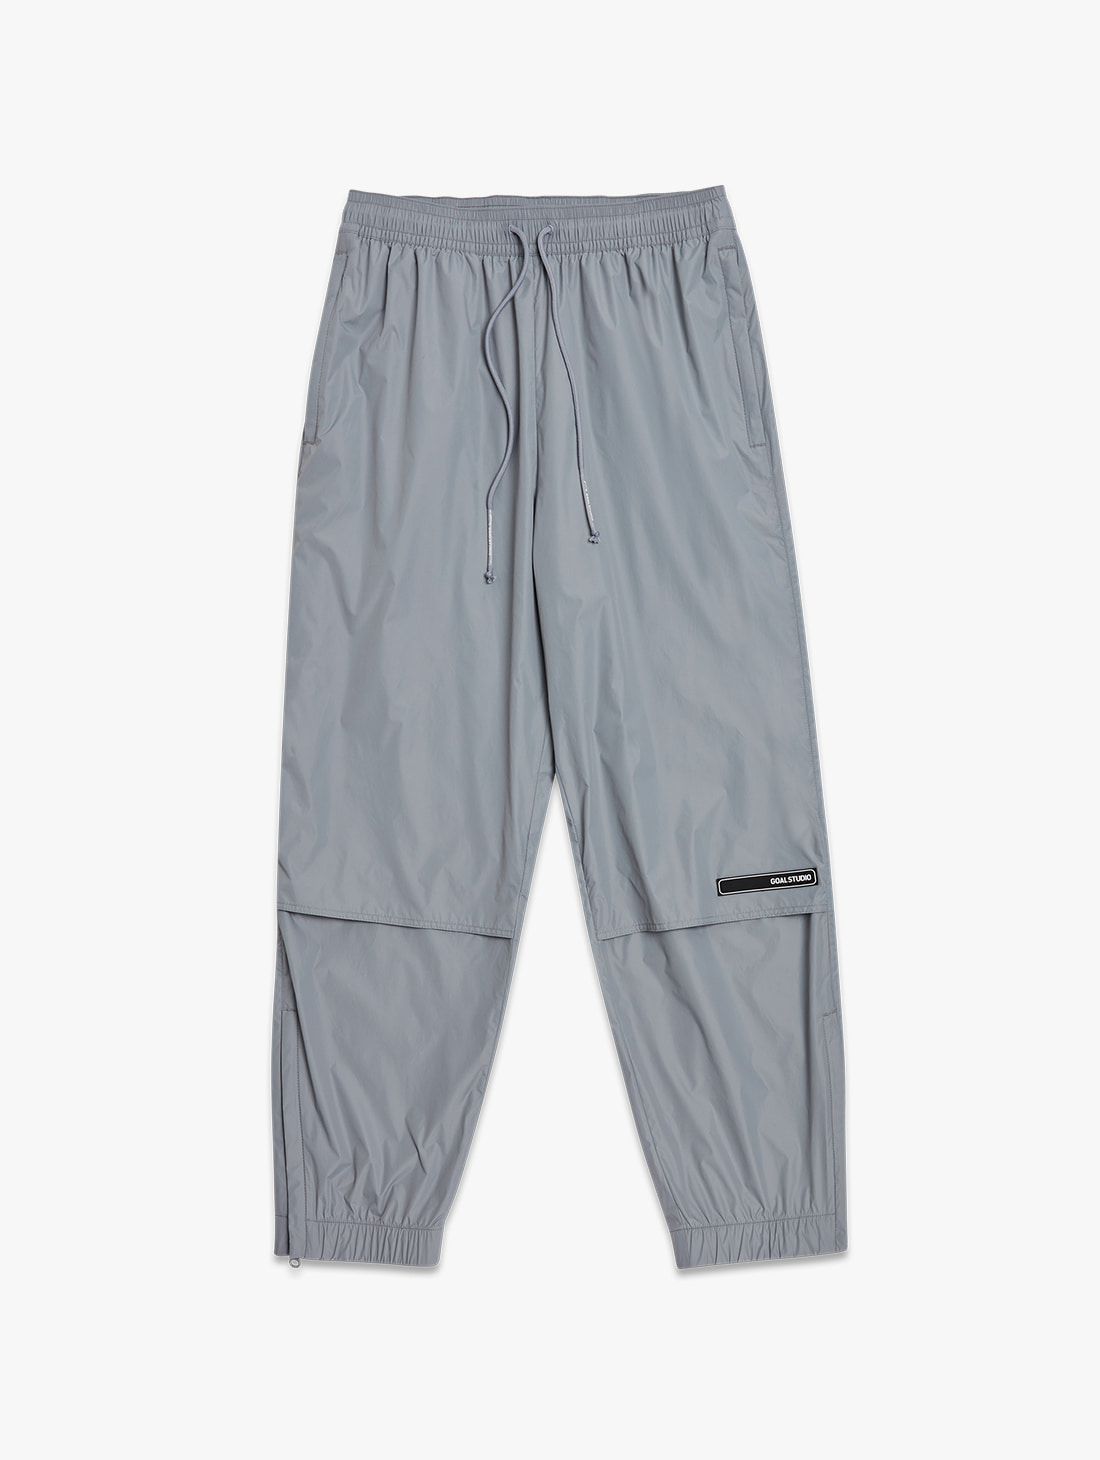 VENTILATED WARMUP PANTS (2 Colors)